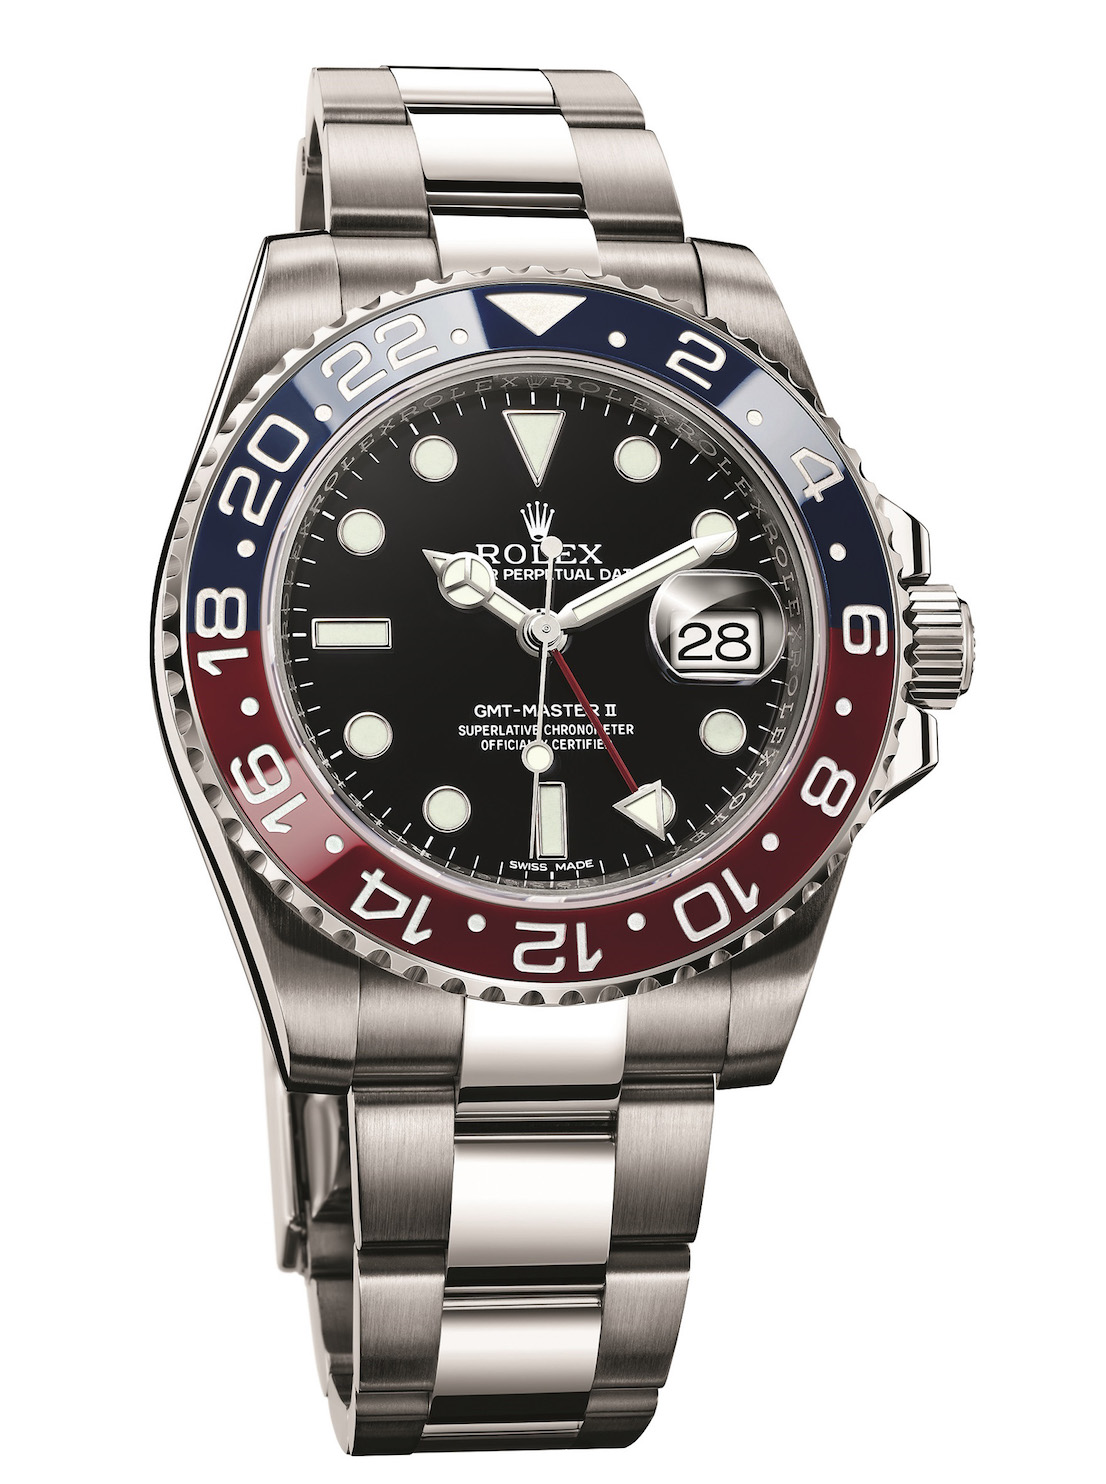 Oyster Perpetual GMT-Master II, Rolex.